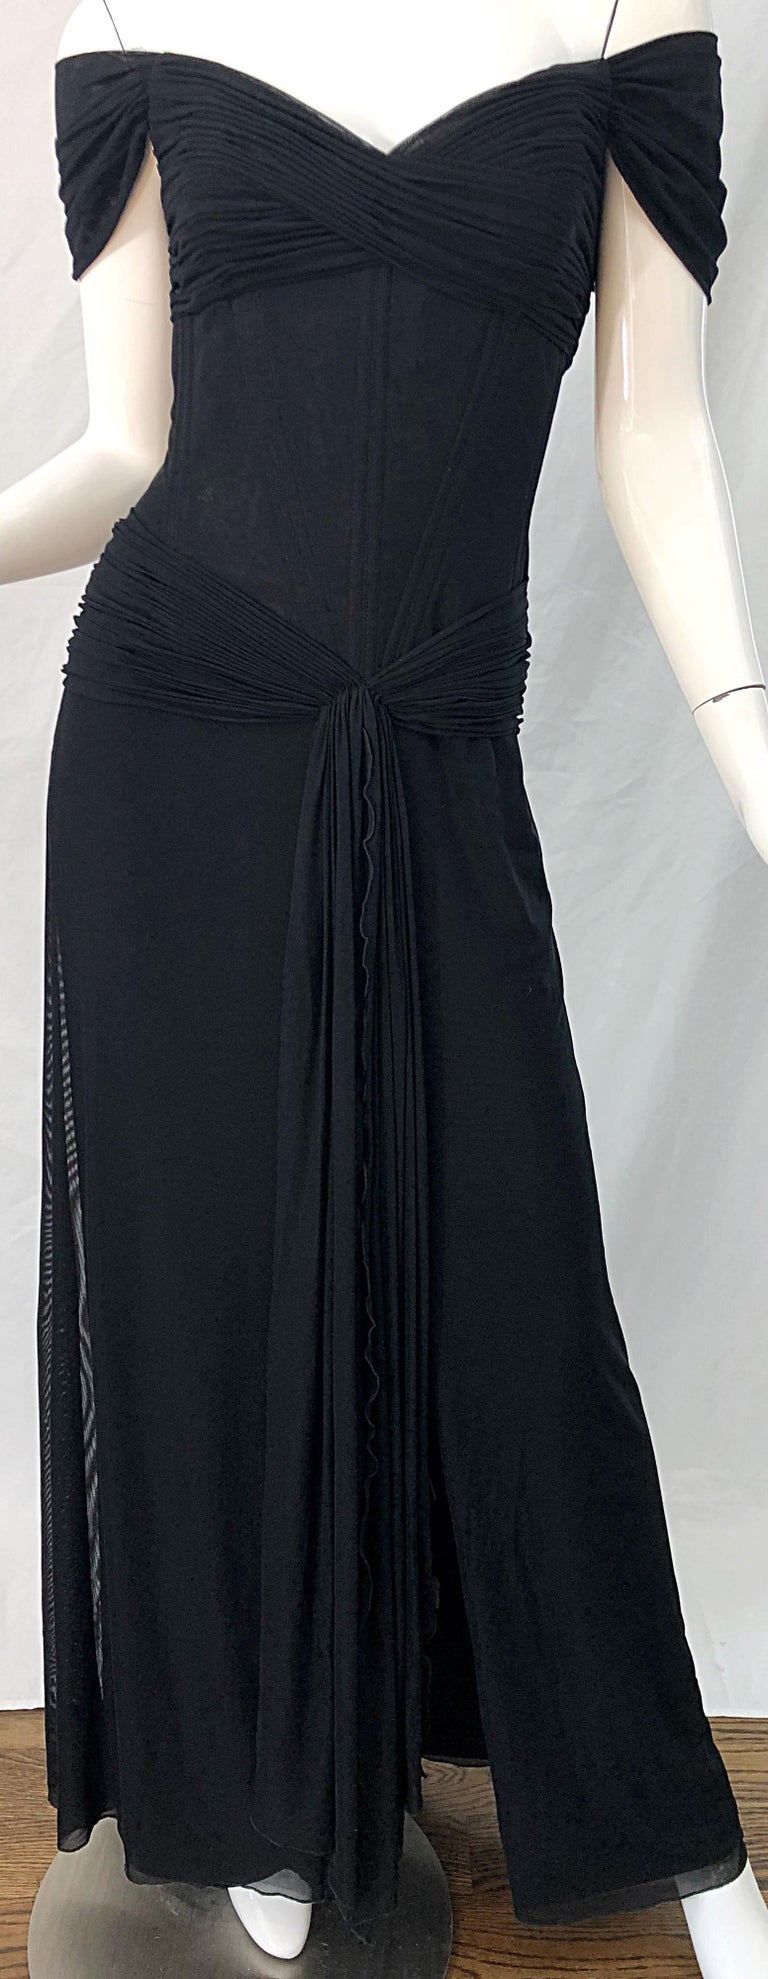 Julia Roberts Pretty Woman Vintage Vicky Tiel Couture Sz 12 Black 1980s Gown For Sale 7